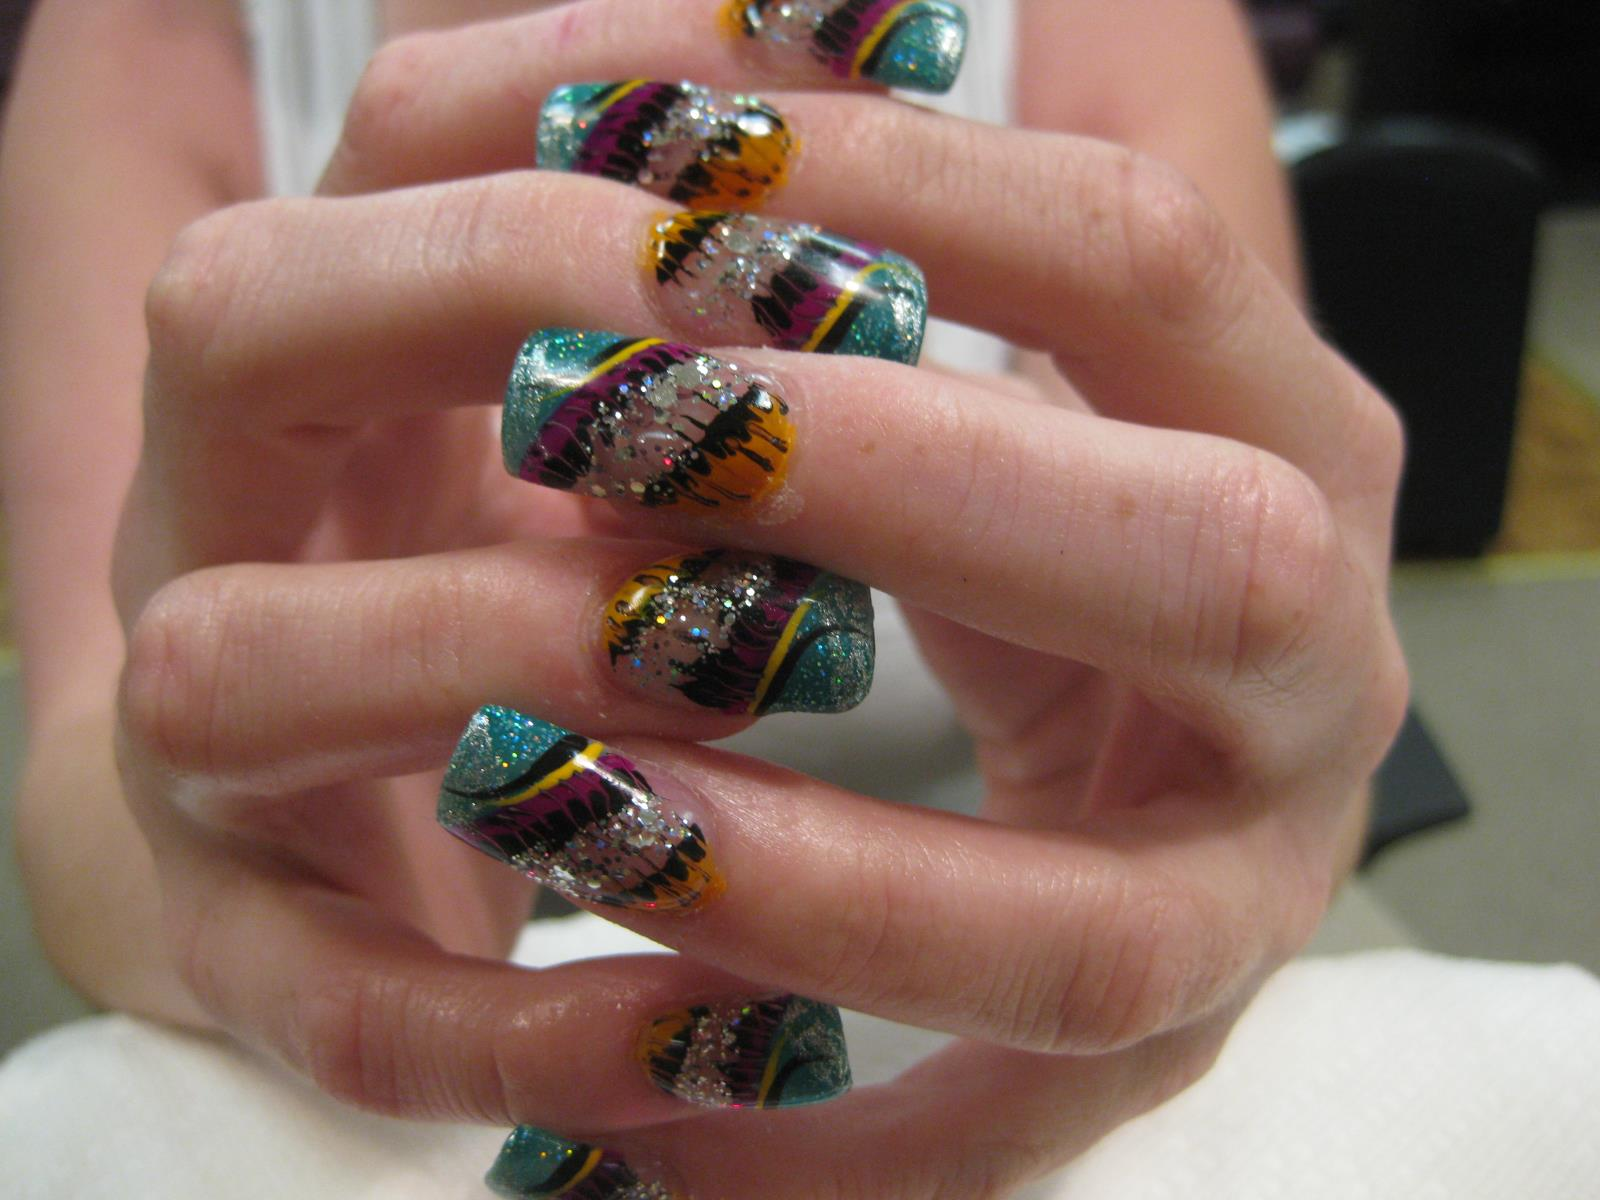 Brazilian Mardi Gras, nail art designs by Top Nails, Clarksville TN ...